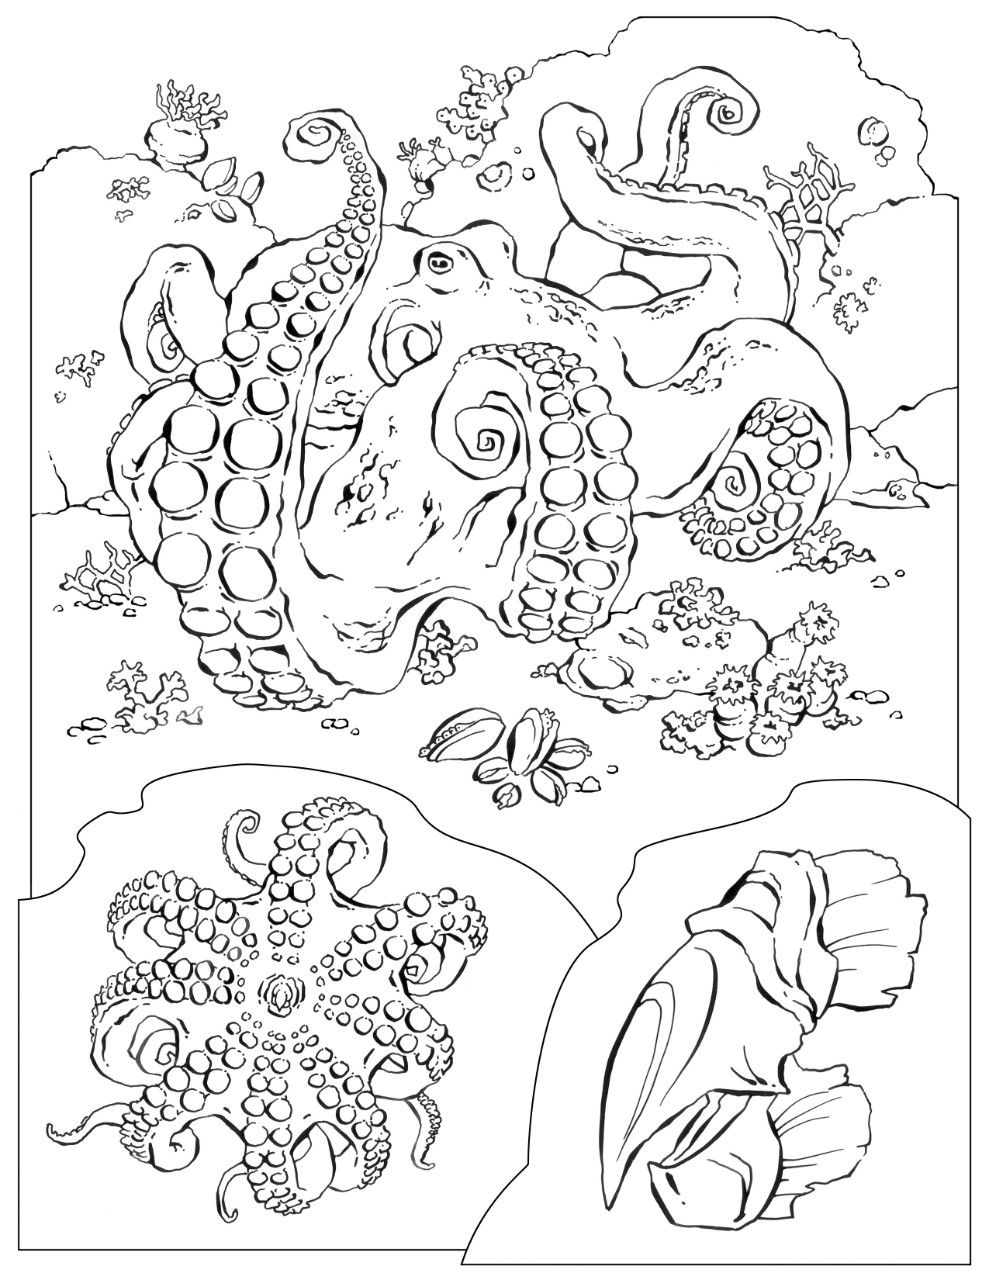 Coloring Book Animals J To Z Coloring Pages Coloring Books